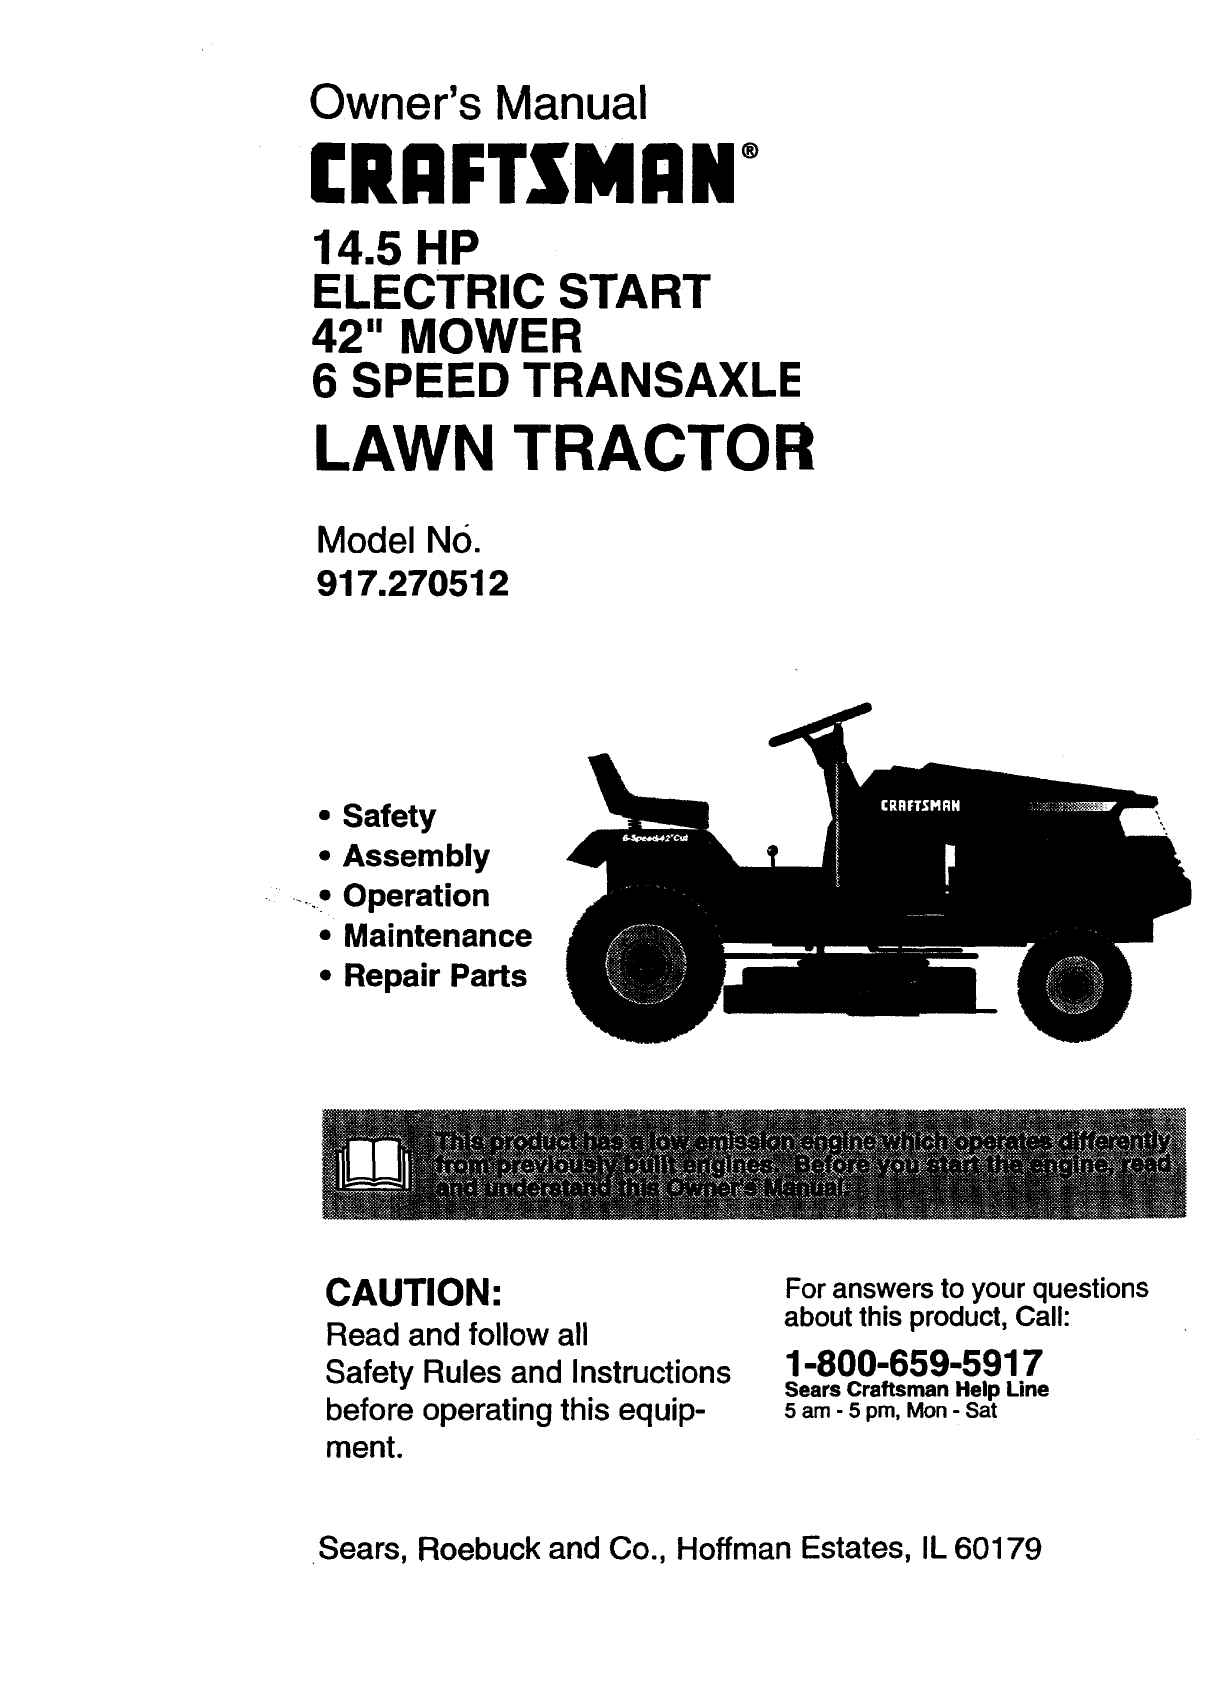 Craftsman Lt1000 Mower Manual : Service manual for craftsman lawn tractor